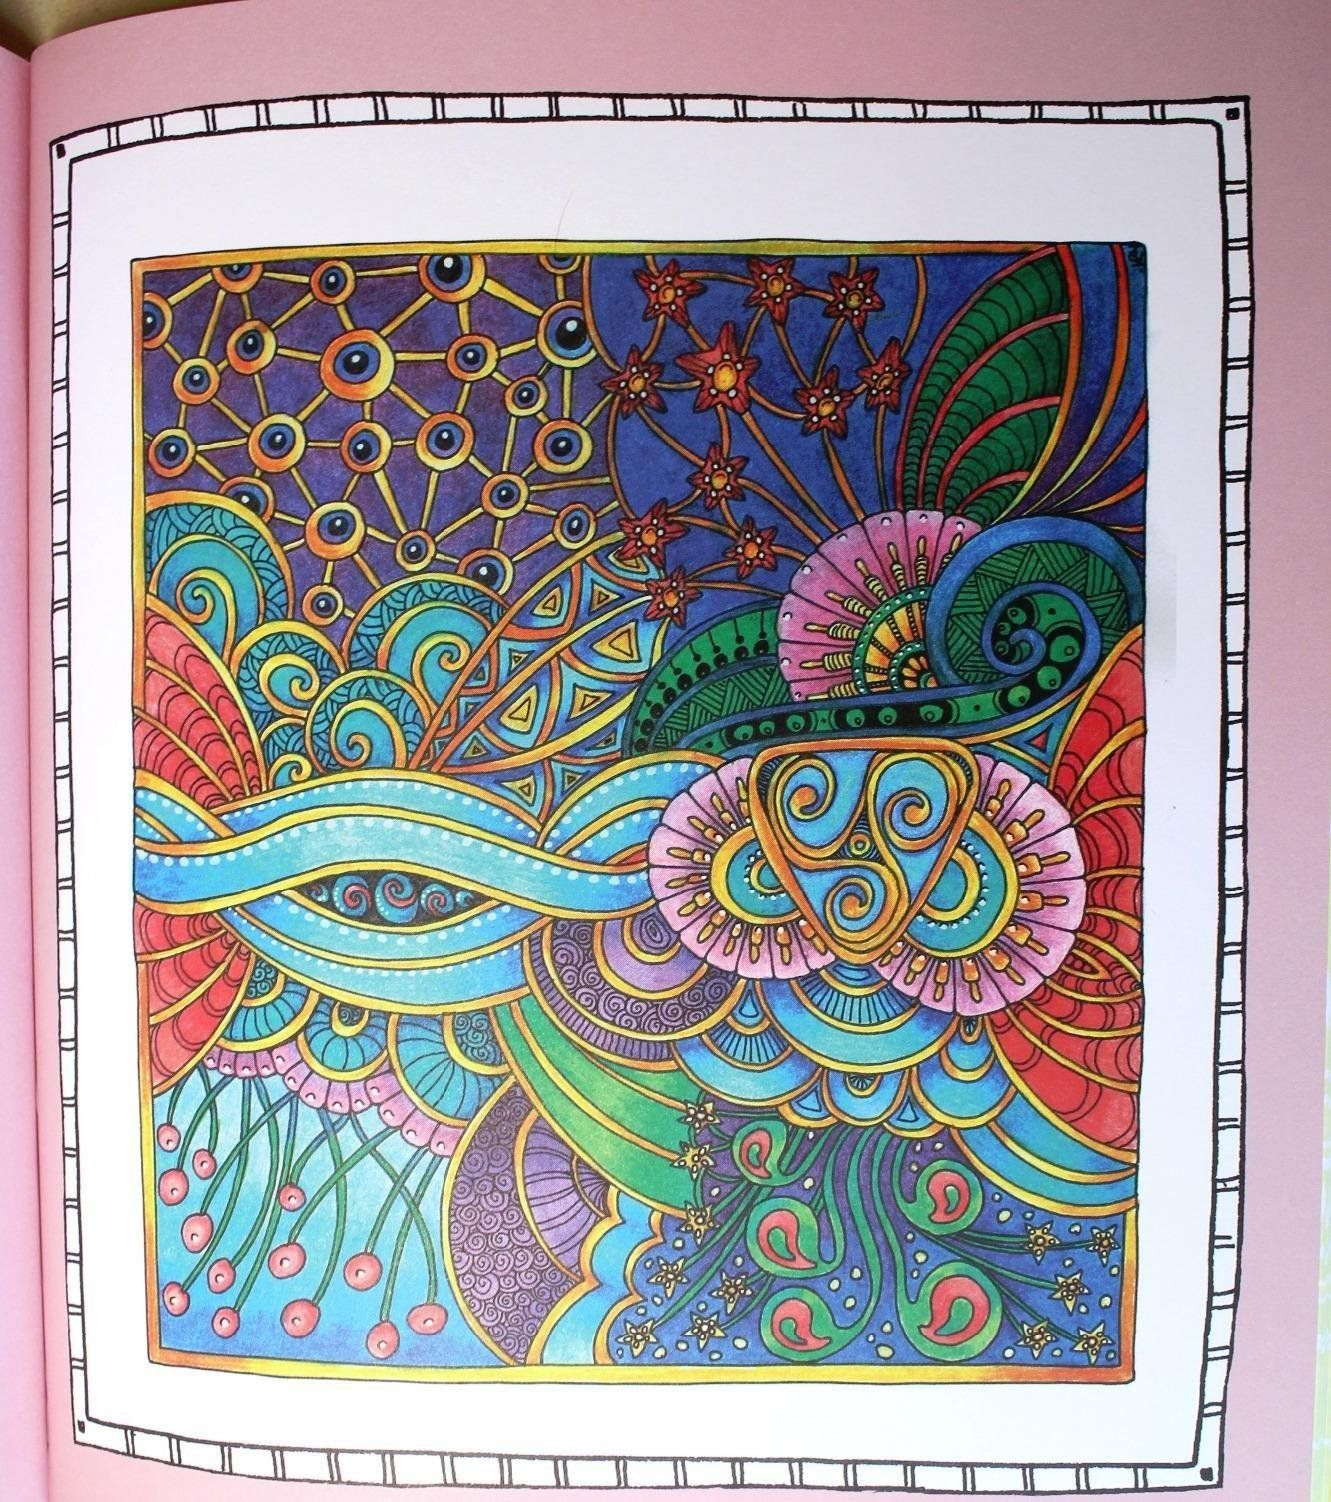 Stress free coloring images - Color Me Stress Free Nearly 100 Coloring Templates To Unplug And Unwind A